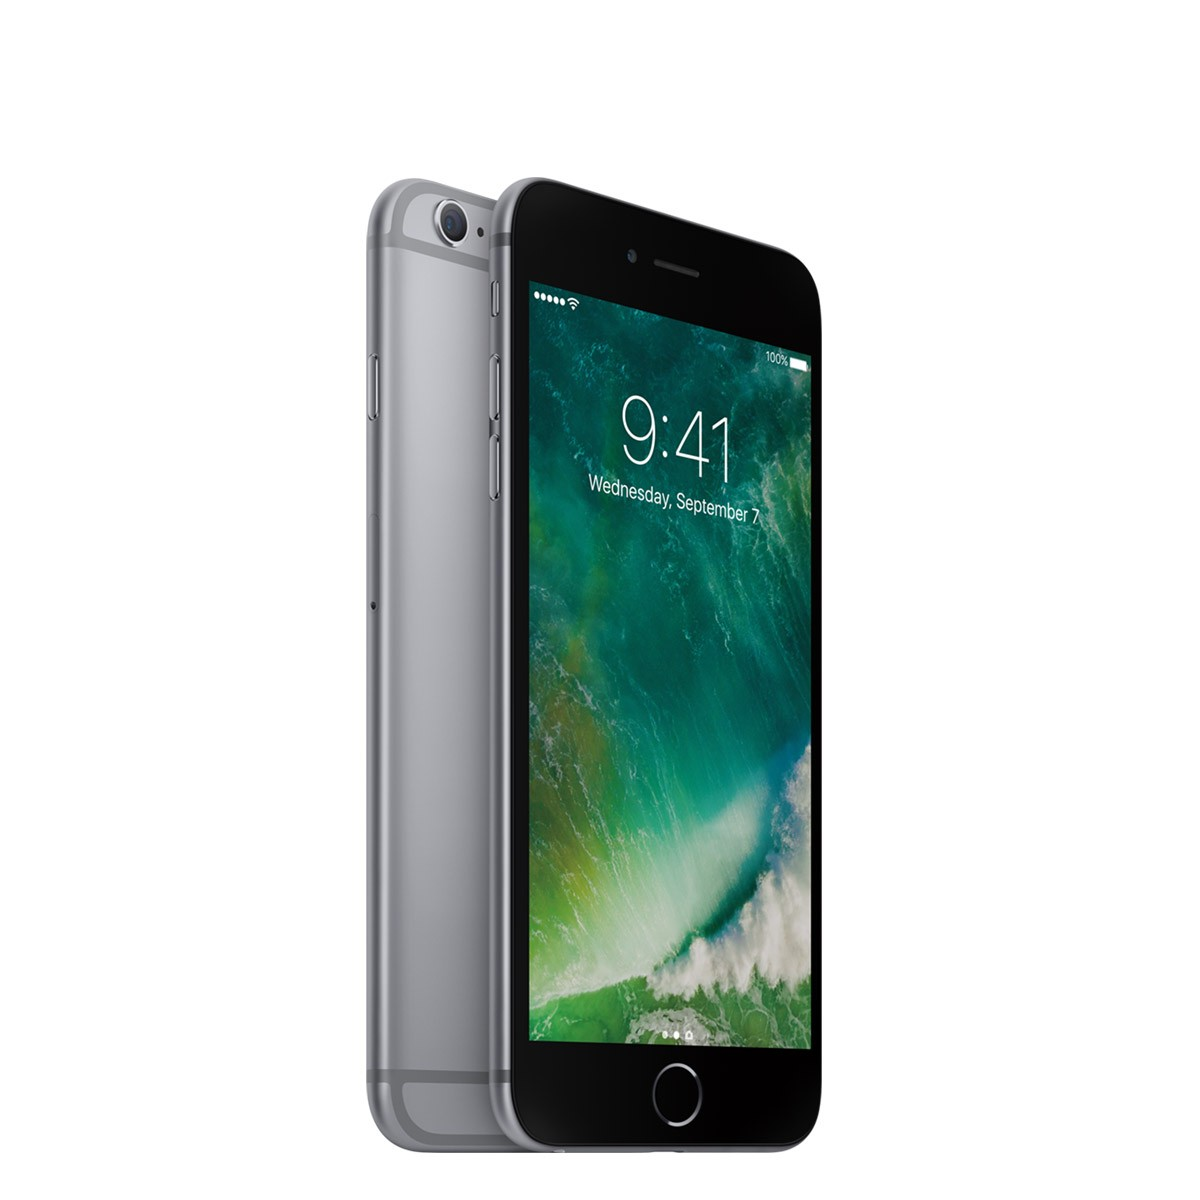 Apple iPhone 6 32GB - Space Gray